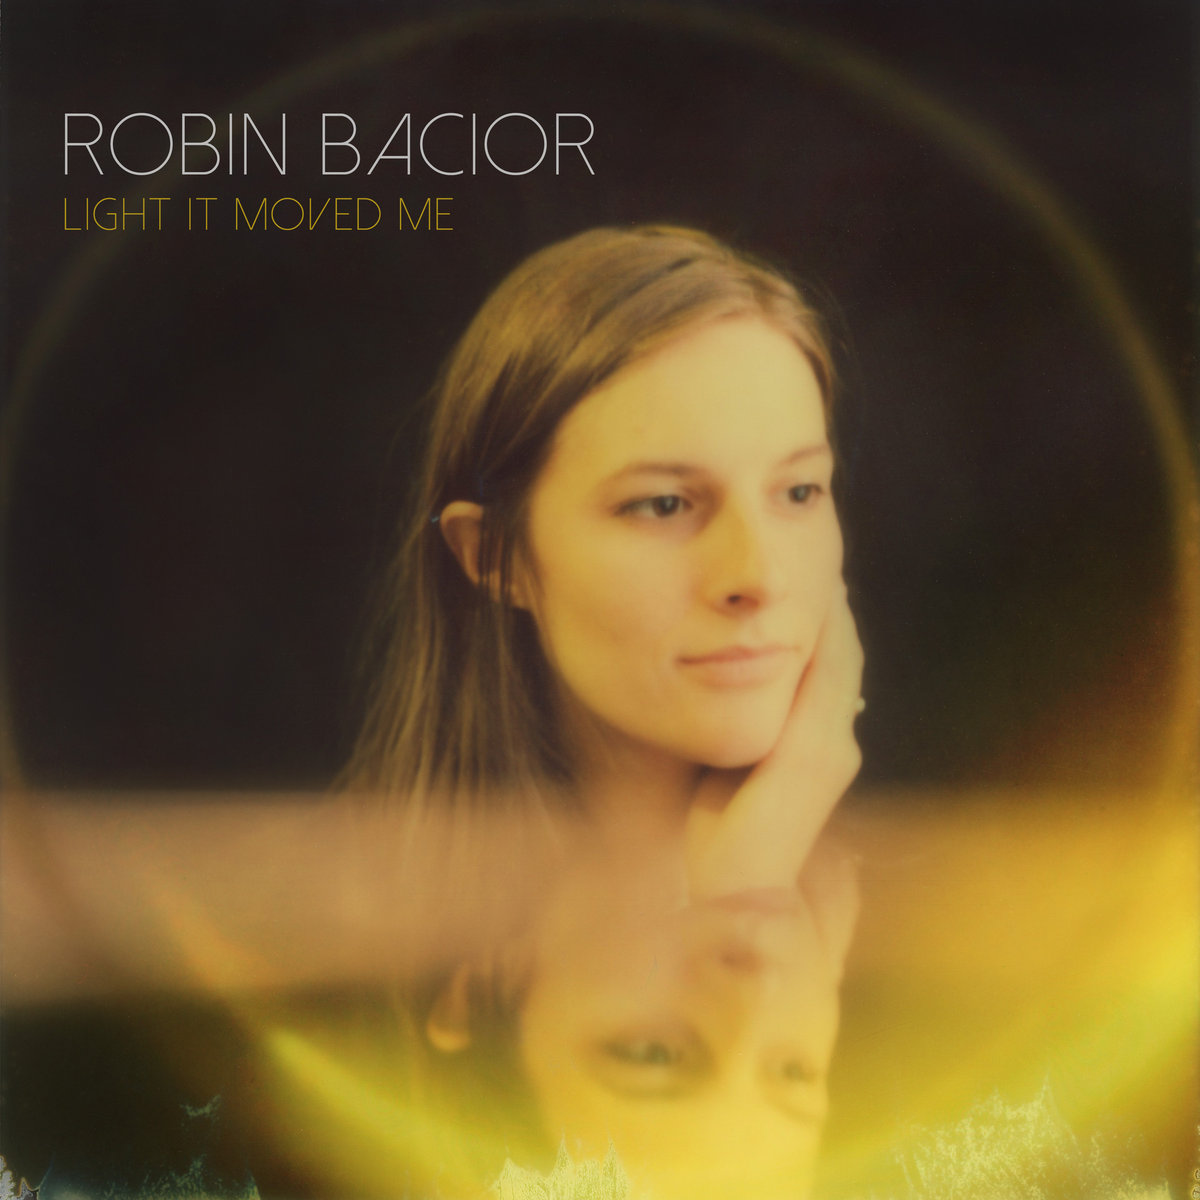 Robin Bacior - Light It Moved Me - engineering / production / mixing